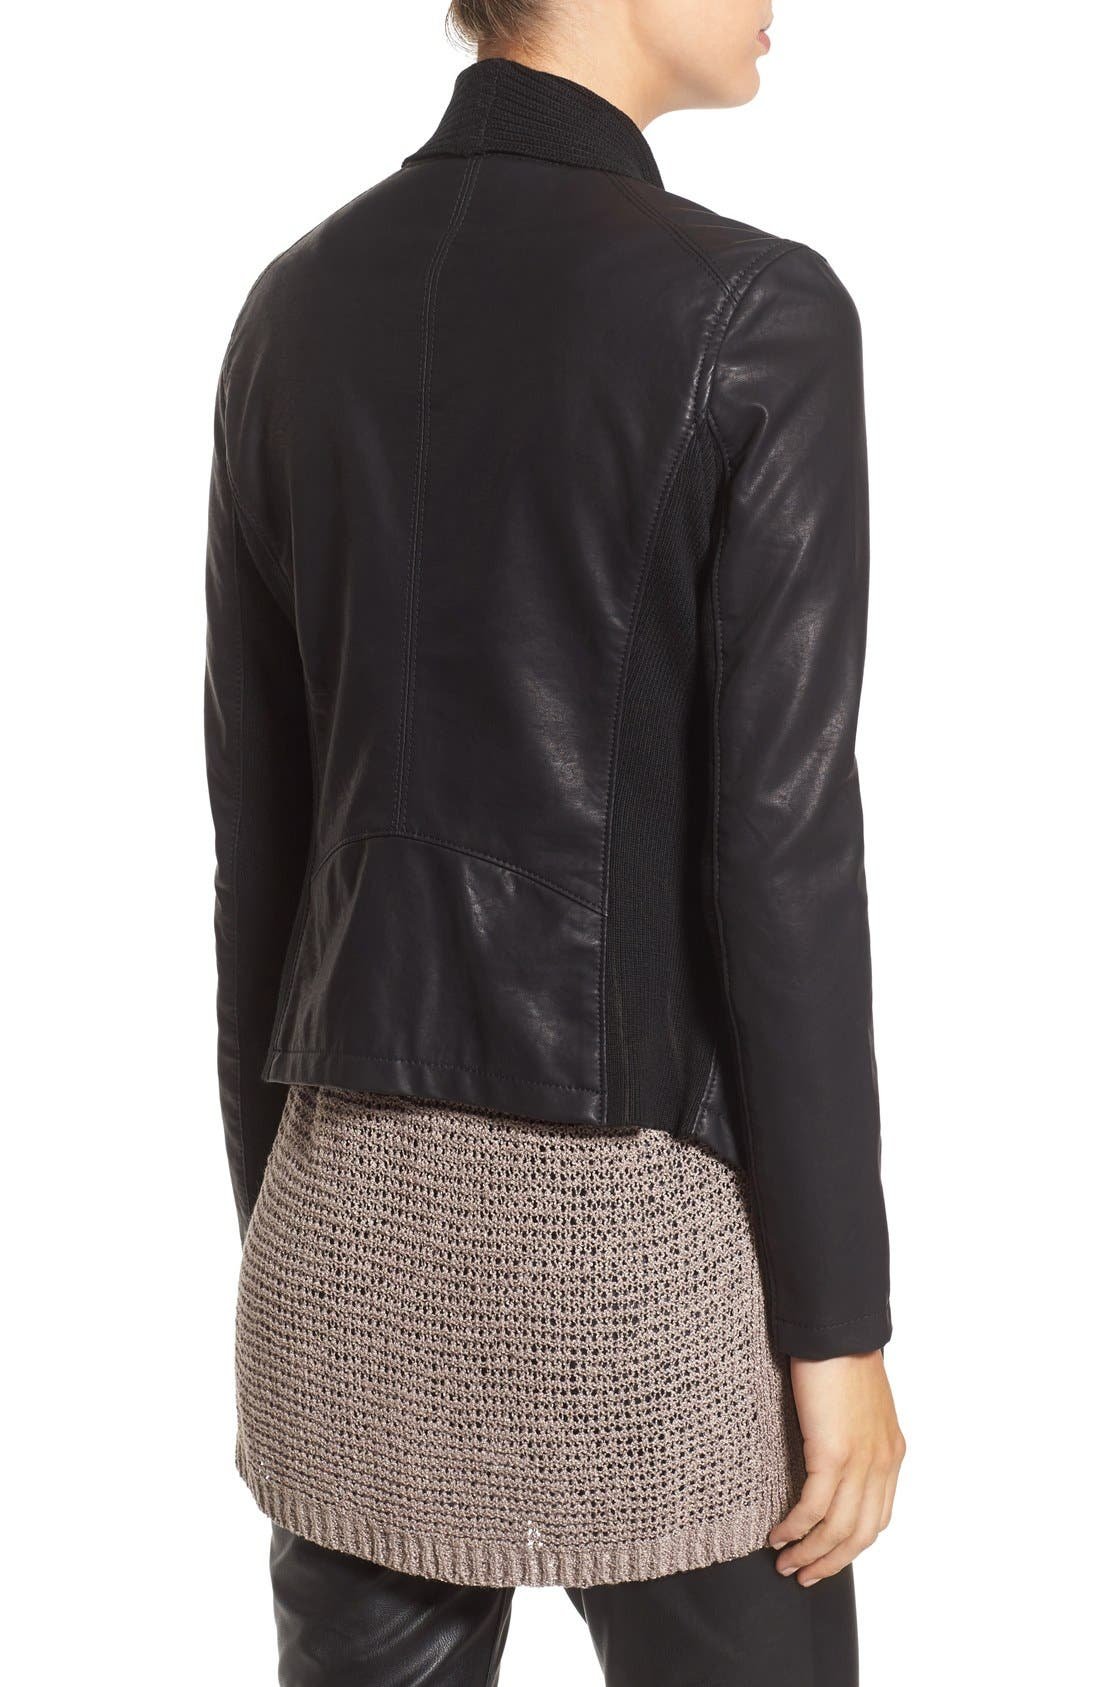 BLANKNYC, All or Nothing Faux Leather Jacket, Alternate thumbnail 3, color, 001